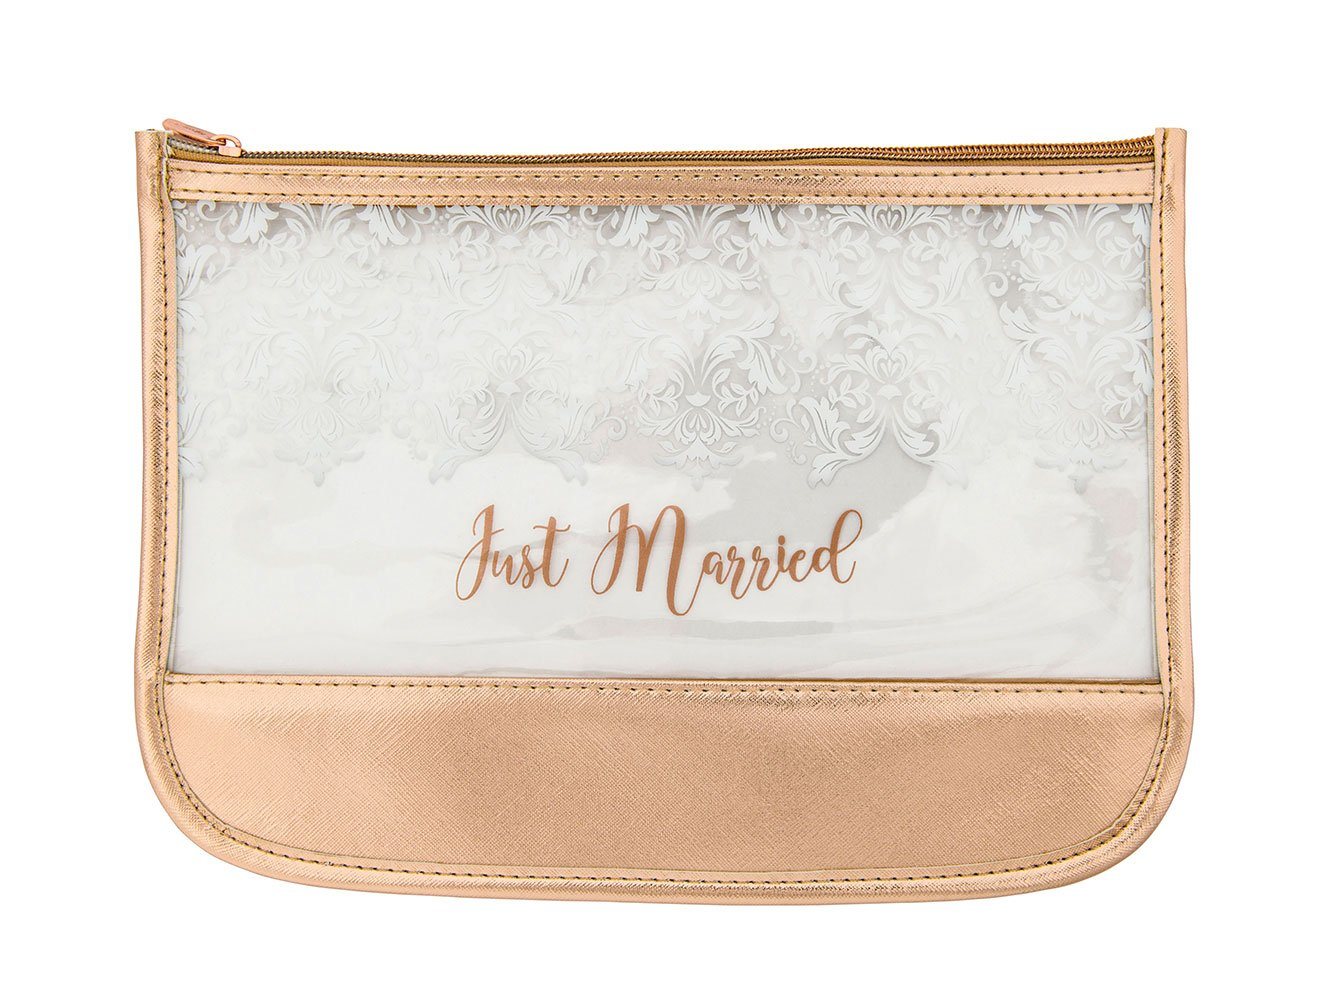 Miamica Women's Just Married Bridal Pouch Or Beach Bag and Totes, Rose Gold